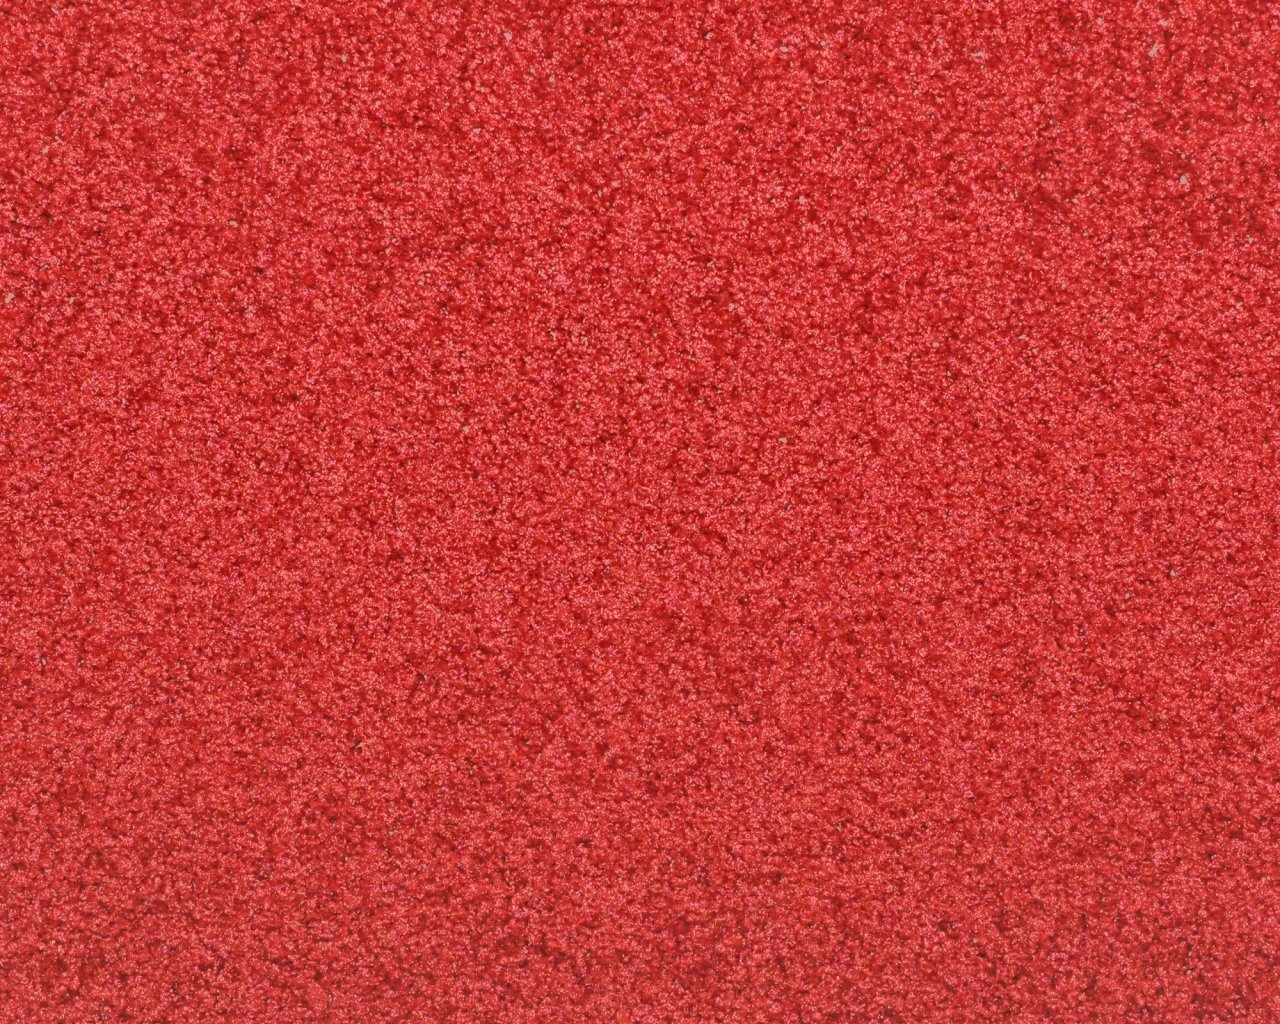 Texture Red Carpet Rug Background Wallpaper Background 1280x1024 1280x1024